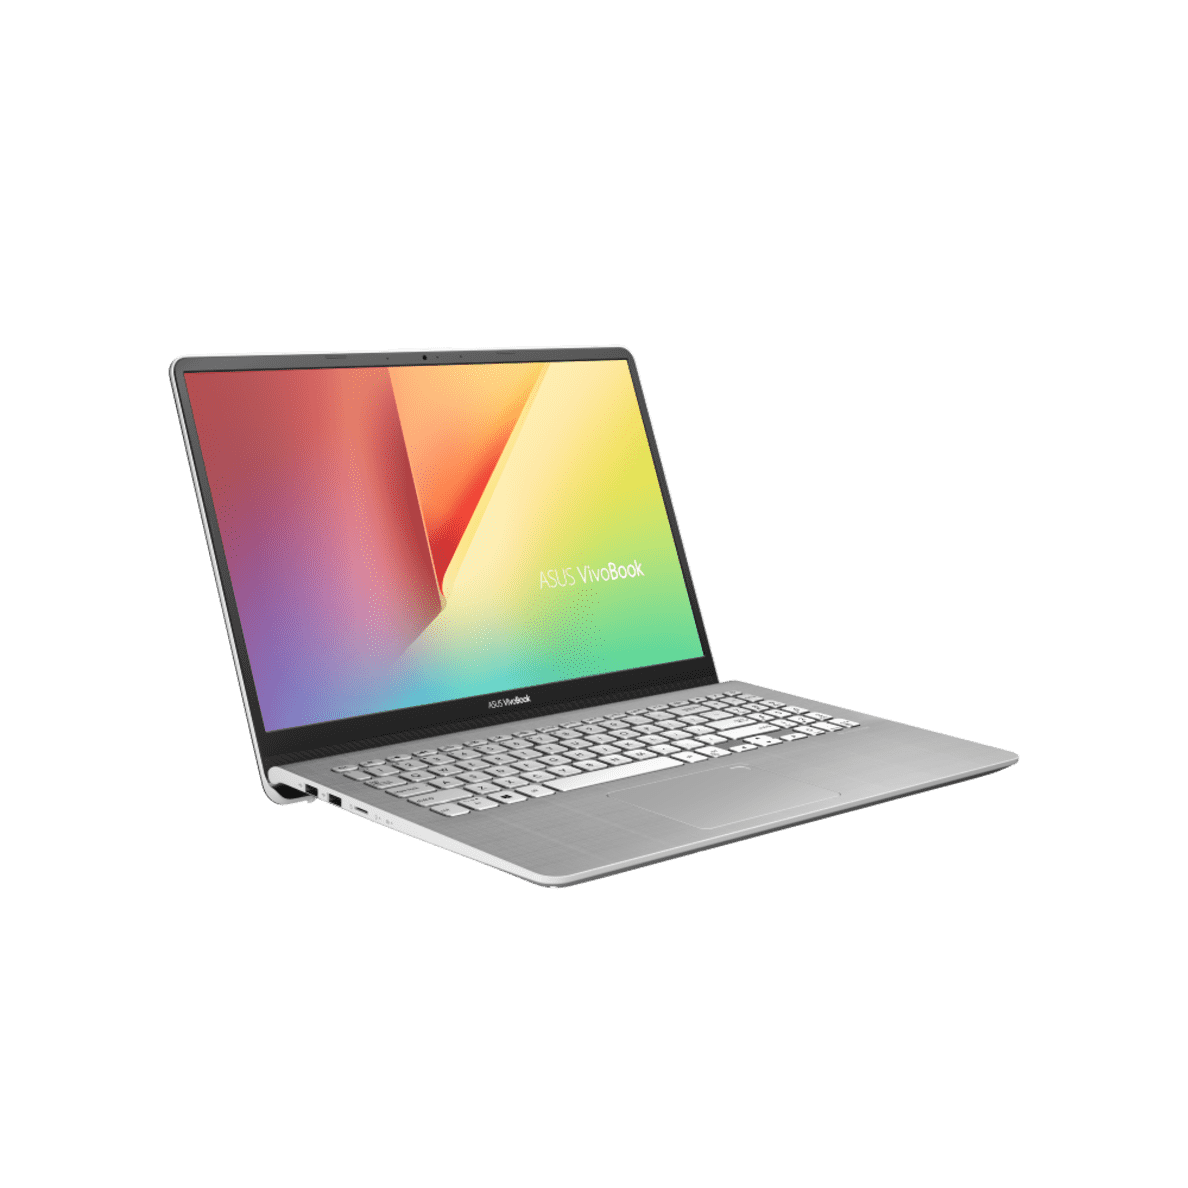 ASUS VivoBook S530FA-BQ235T Notebook mit Core™ i5, 16 GB RAM, 1 TB & Intel® UHD-Grafik 620 in Gun Metal Texture